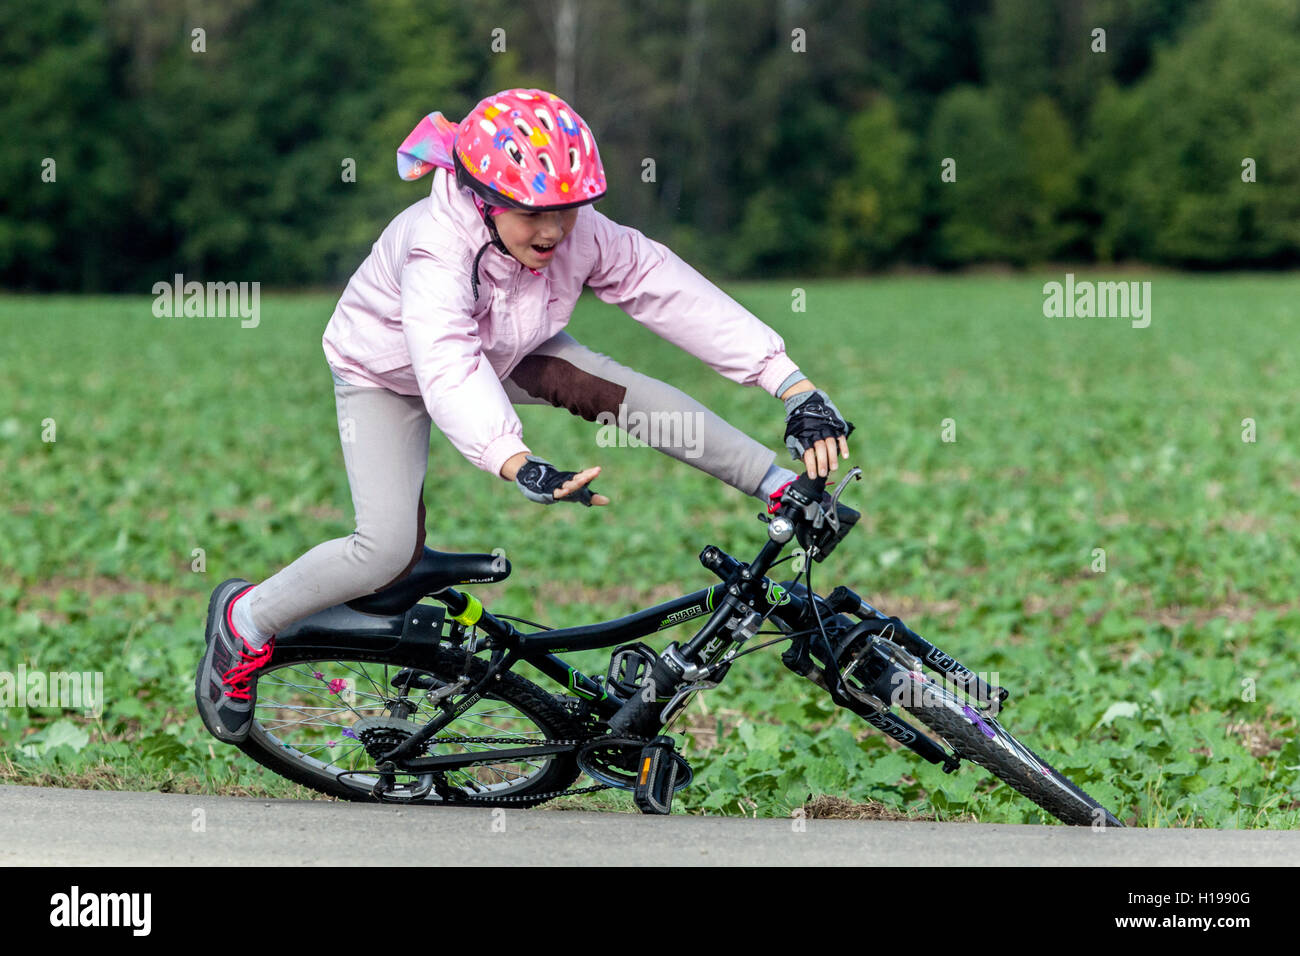 child fall off the bike Stock Photo: 121291872 - Alamy